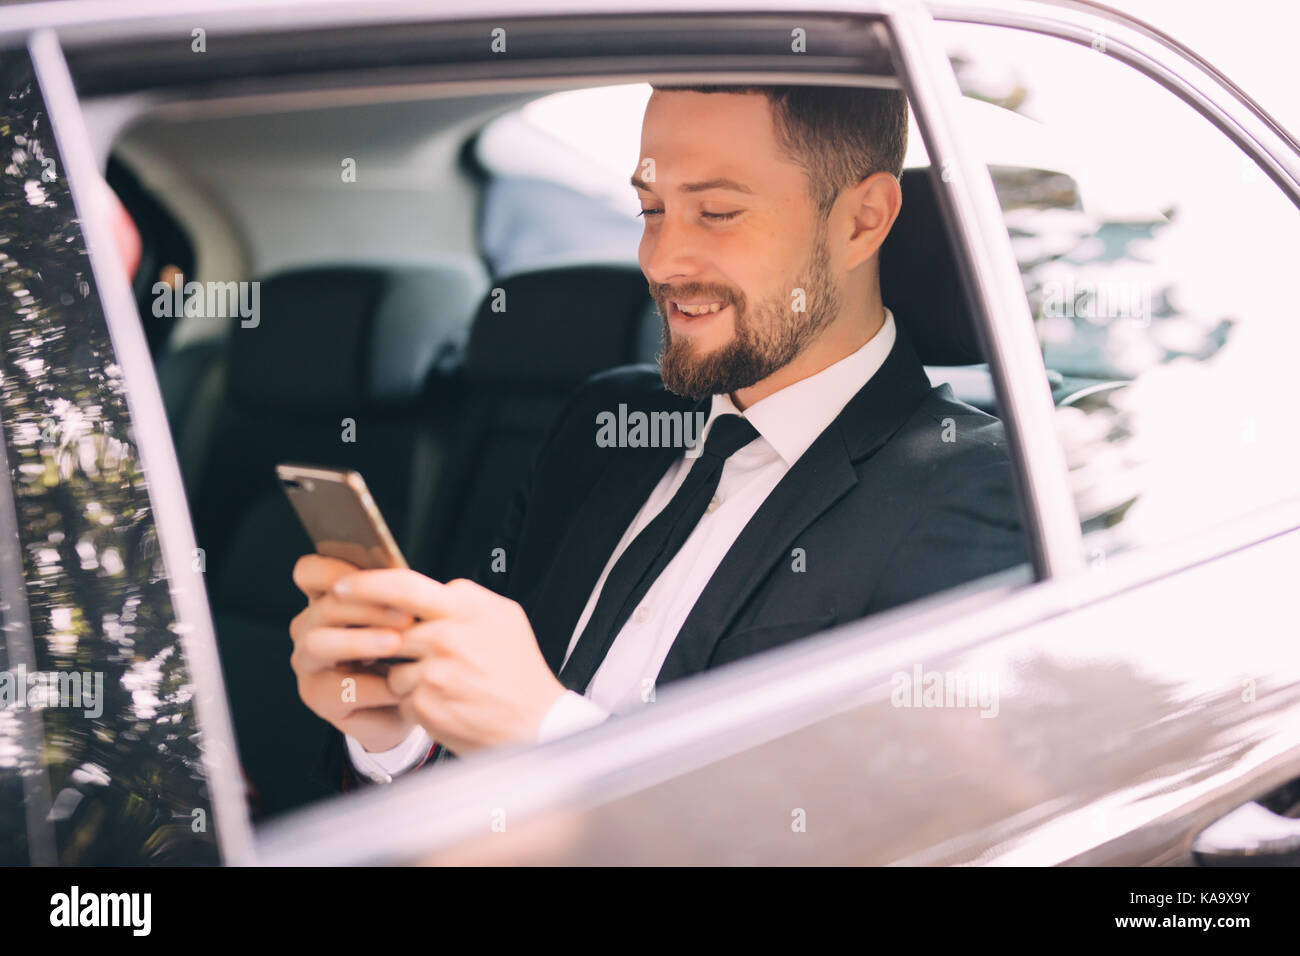 Serious businessman using his phone in his car - Stock Image